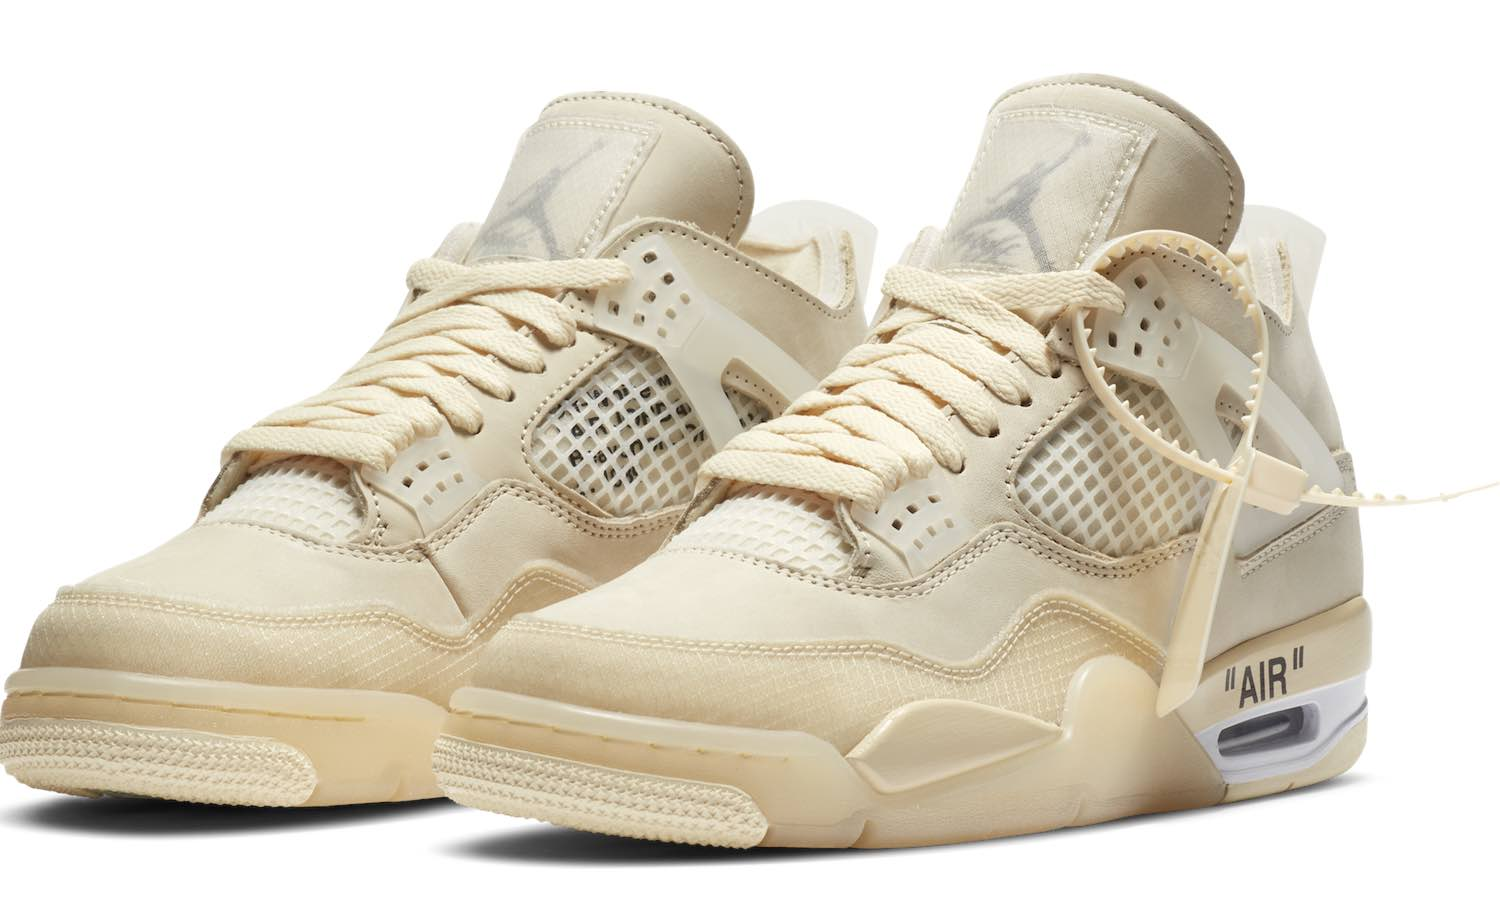 Los Air Jordan 4 x Off – White llegan a México con causa social